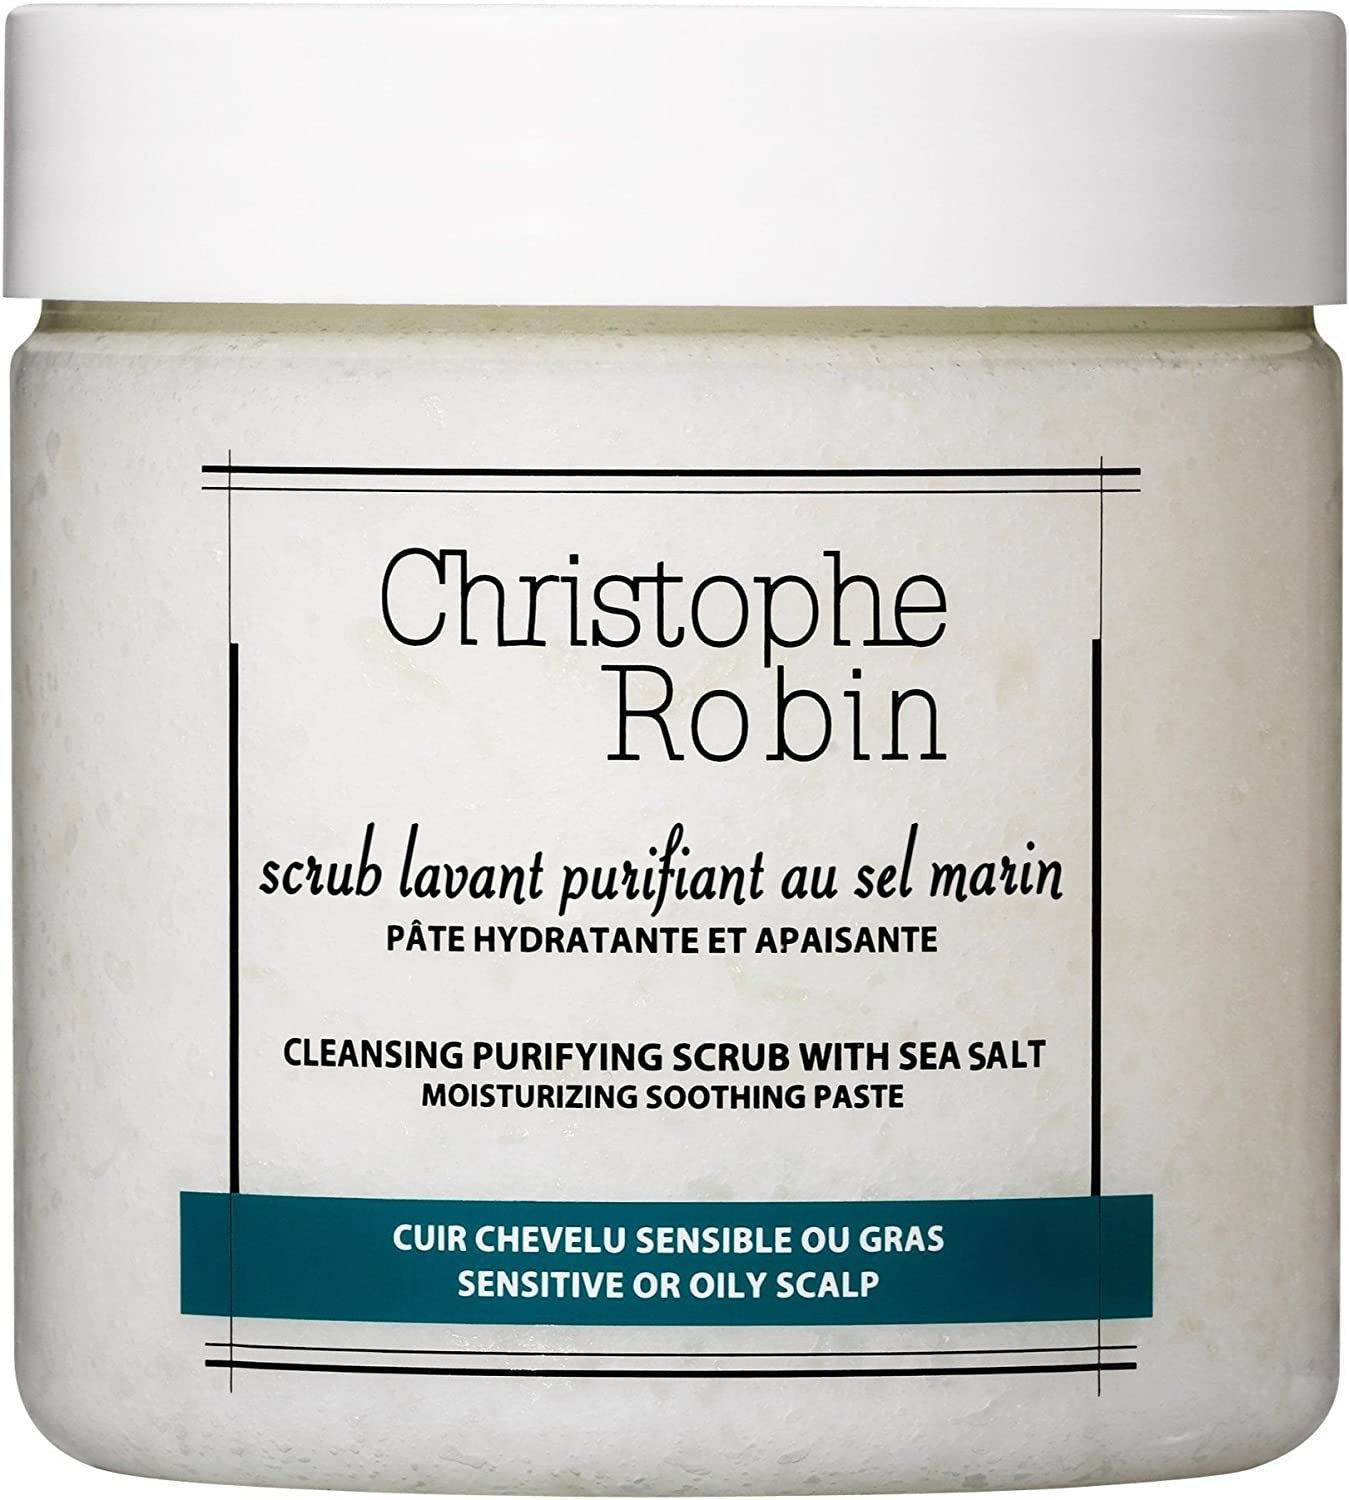 Cleansing Purifying Scrub with Sea Salt 250 ml by Christophe Robin ...